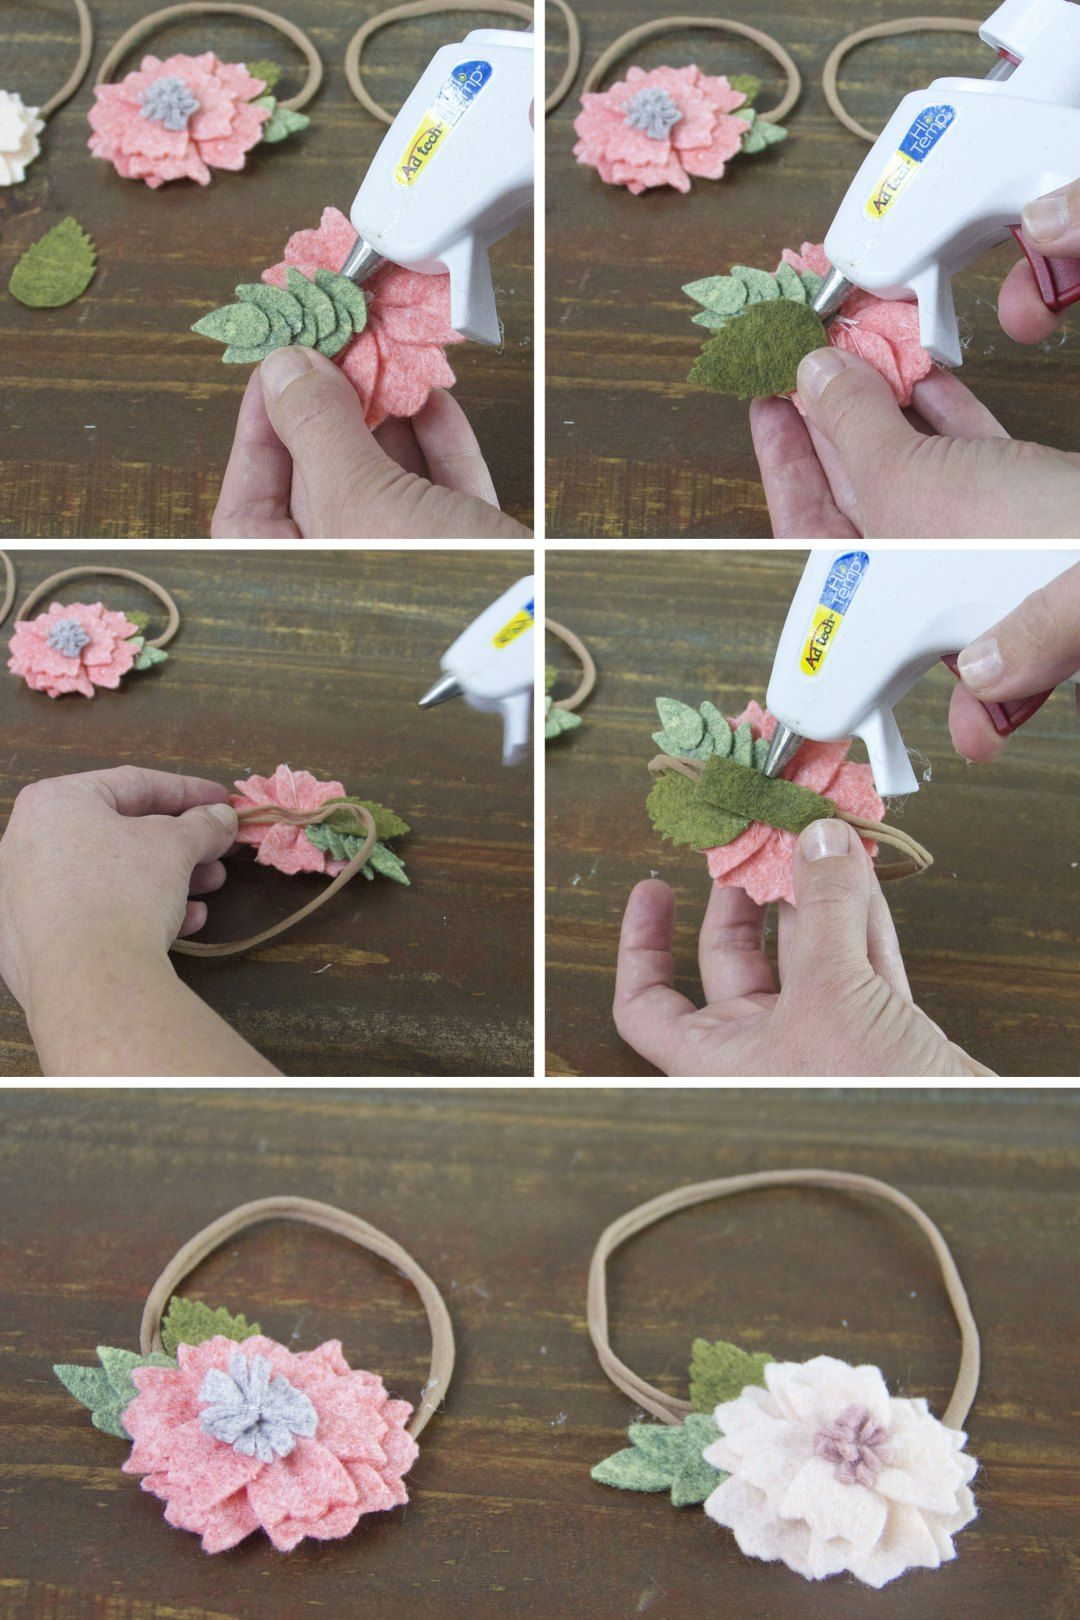 How To Make A Felt Flower Headband #feltflowerheadbands